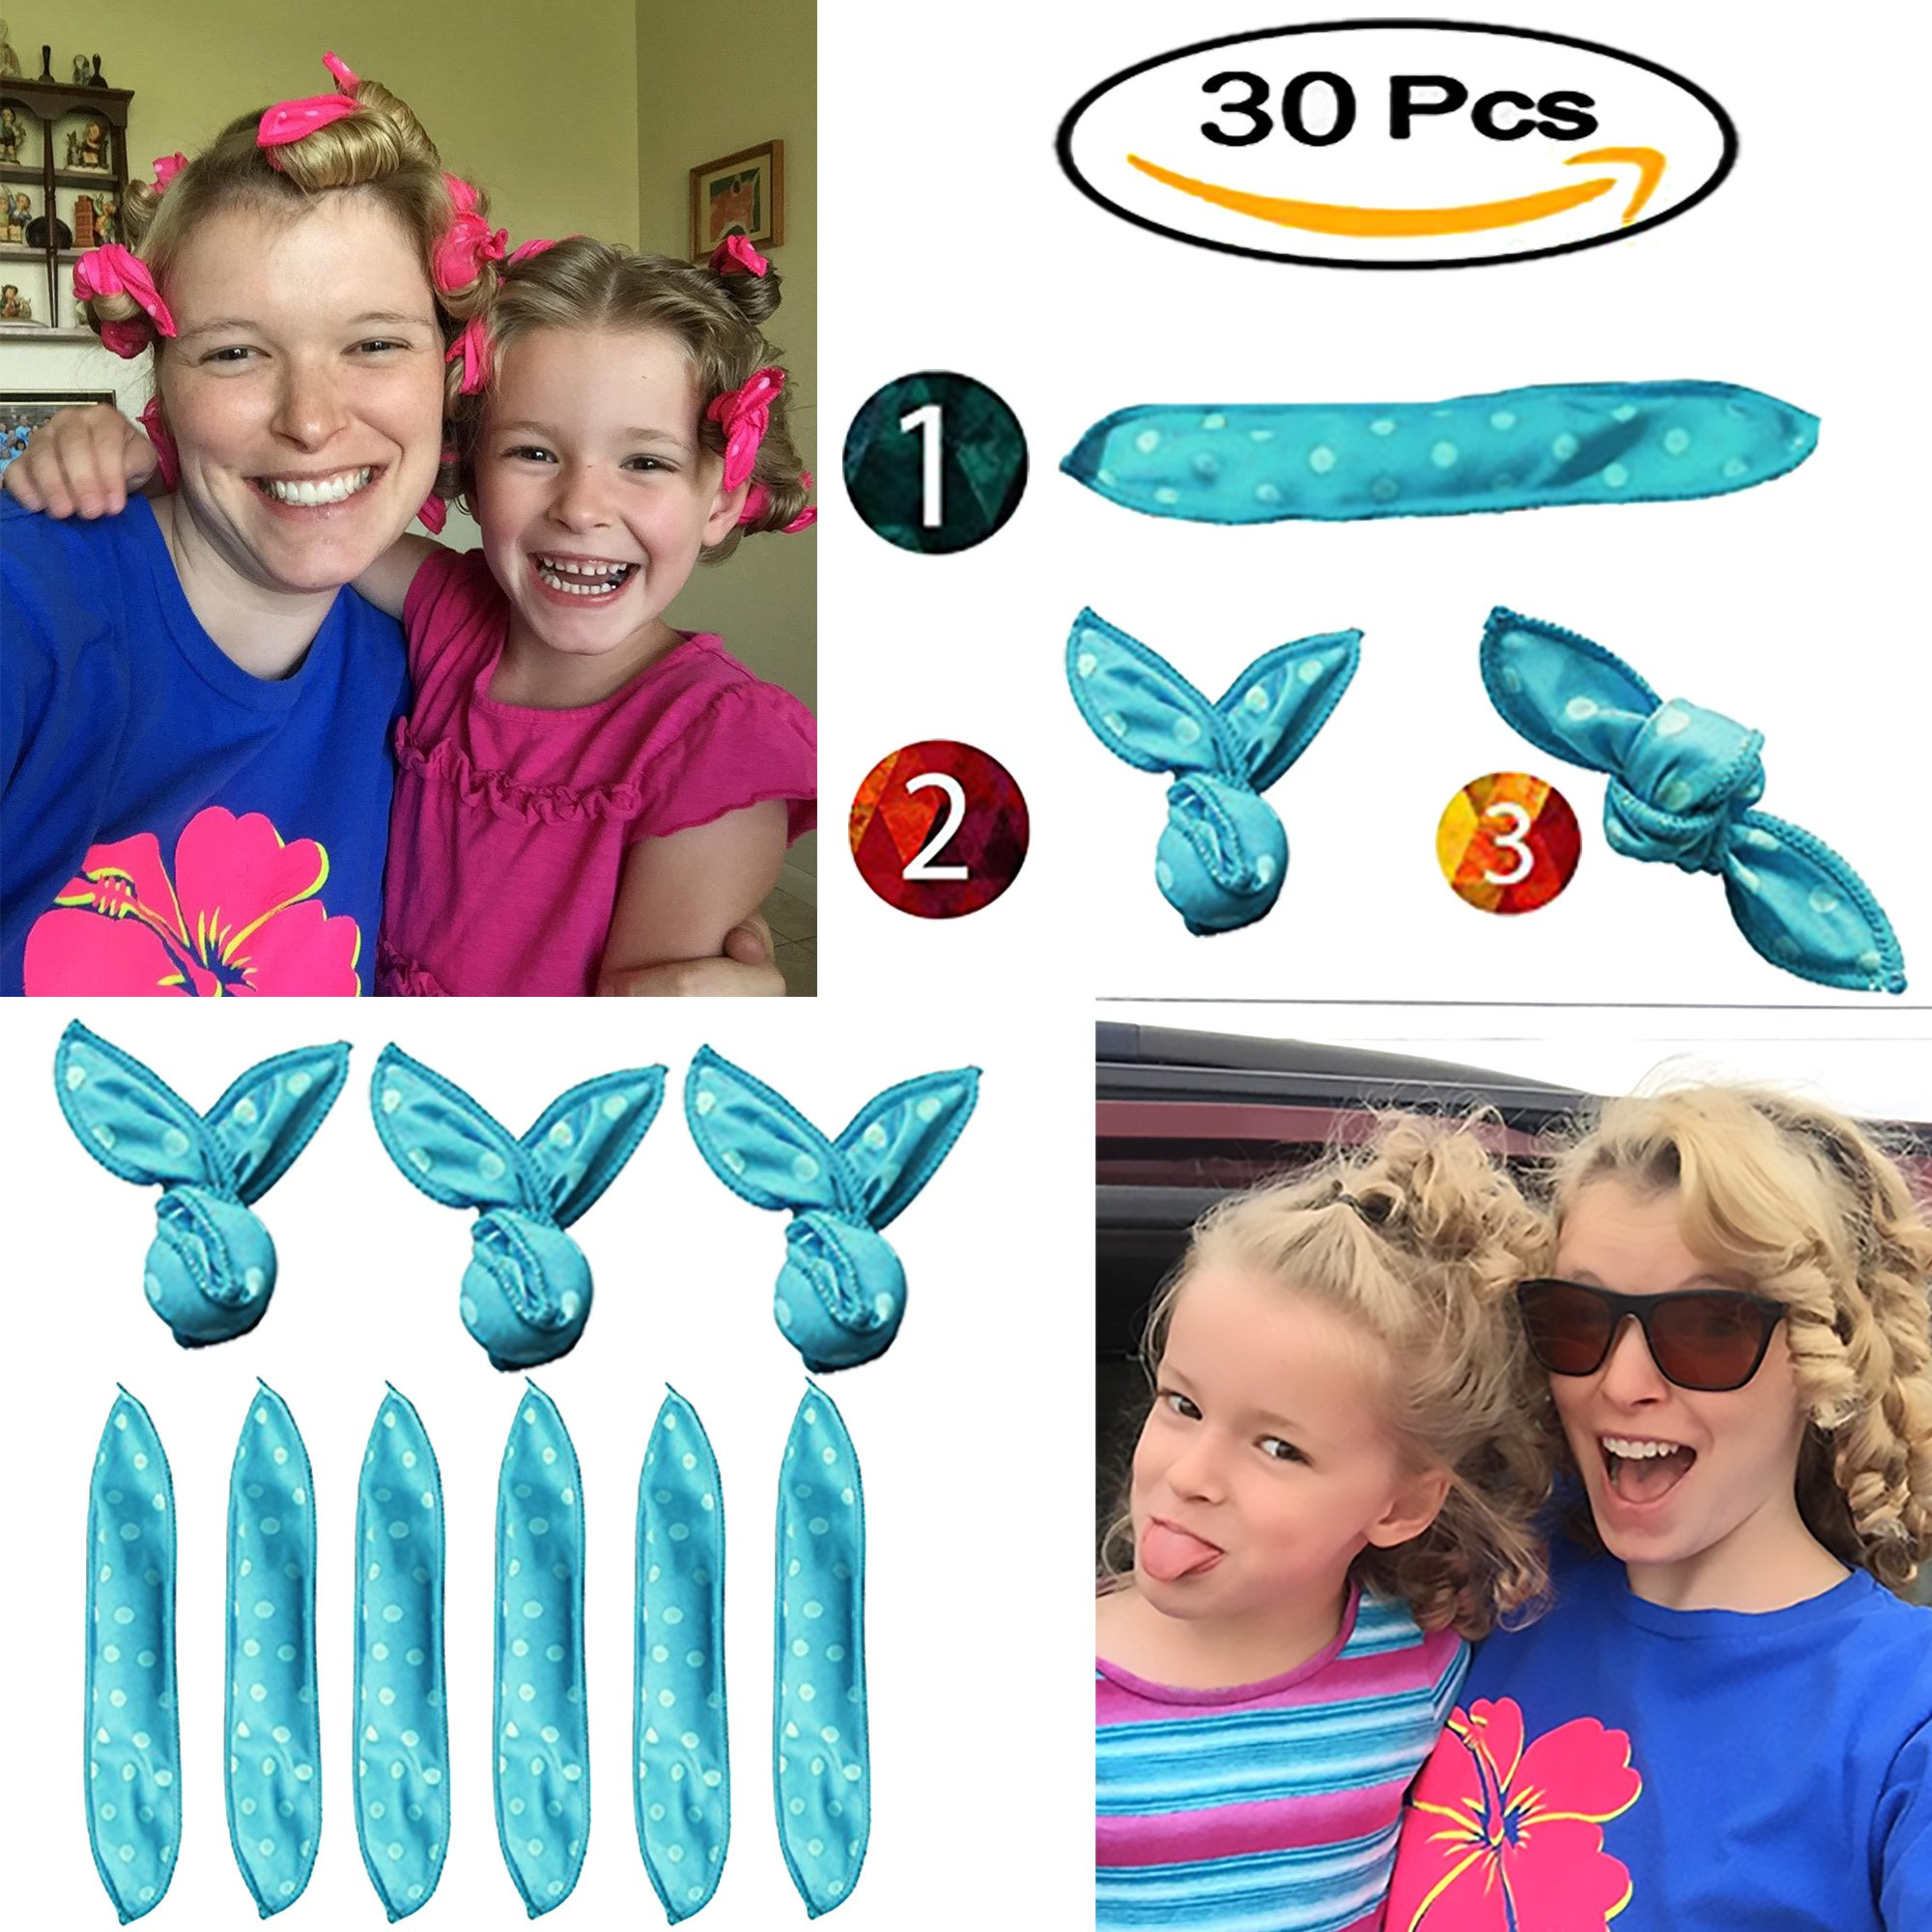 Hair Curlers, Sleep Curlers SXG 30 PCS No Heat Foam Rollers for Long Short Hair, Pillow Hair Rollers Curlers for Women&Girls- Blue